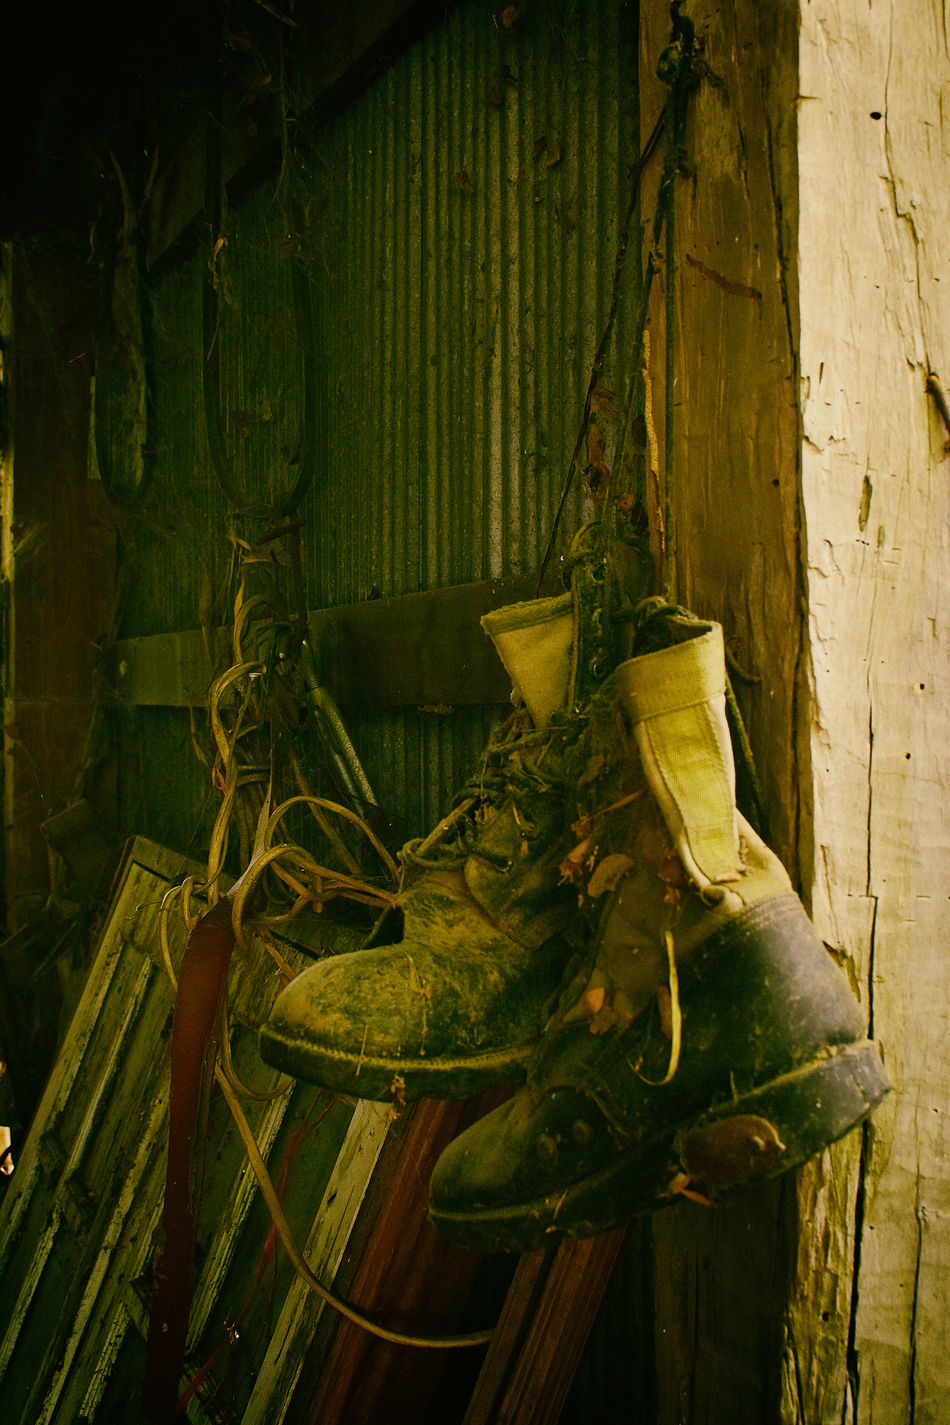 old A Pair Of Shoes Aged CastAway  Disband Hanging Not Used Old Old Shoes Outcast Shabby